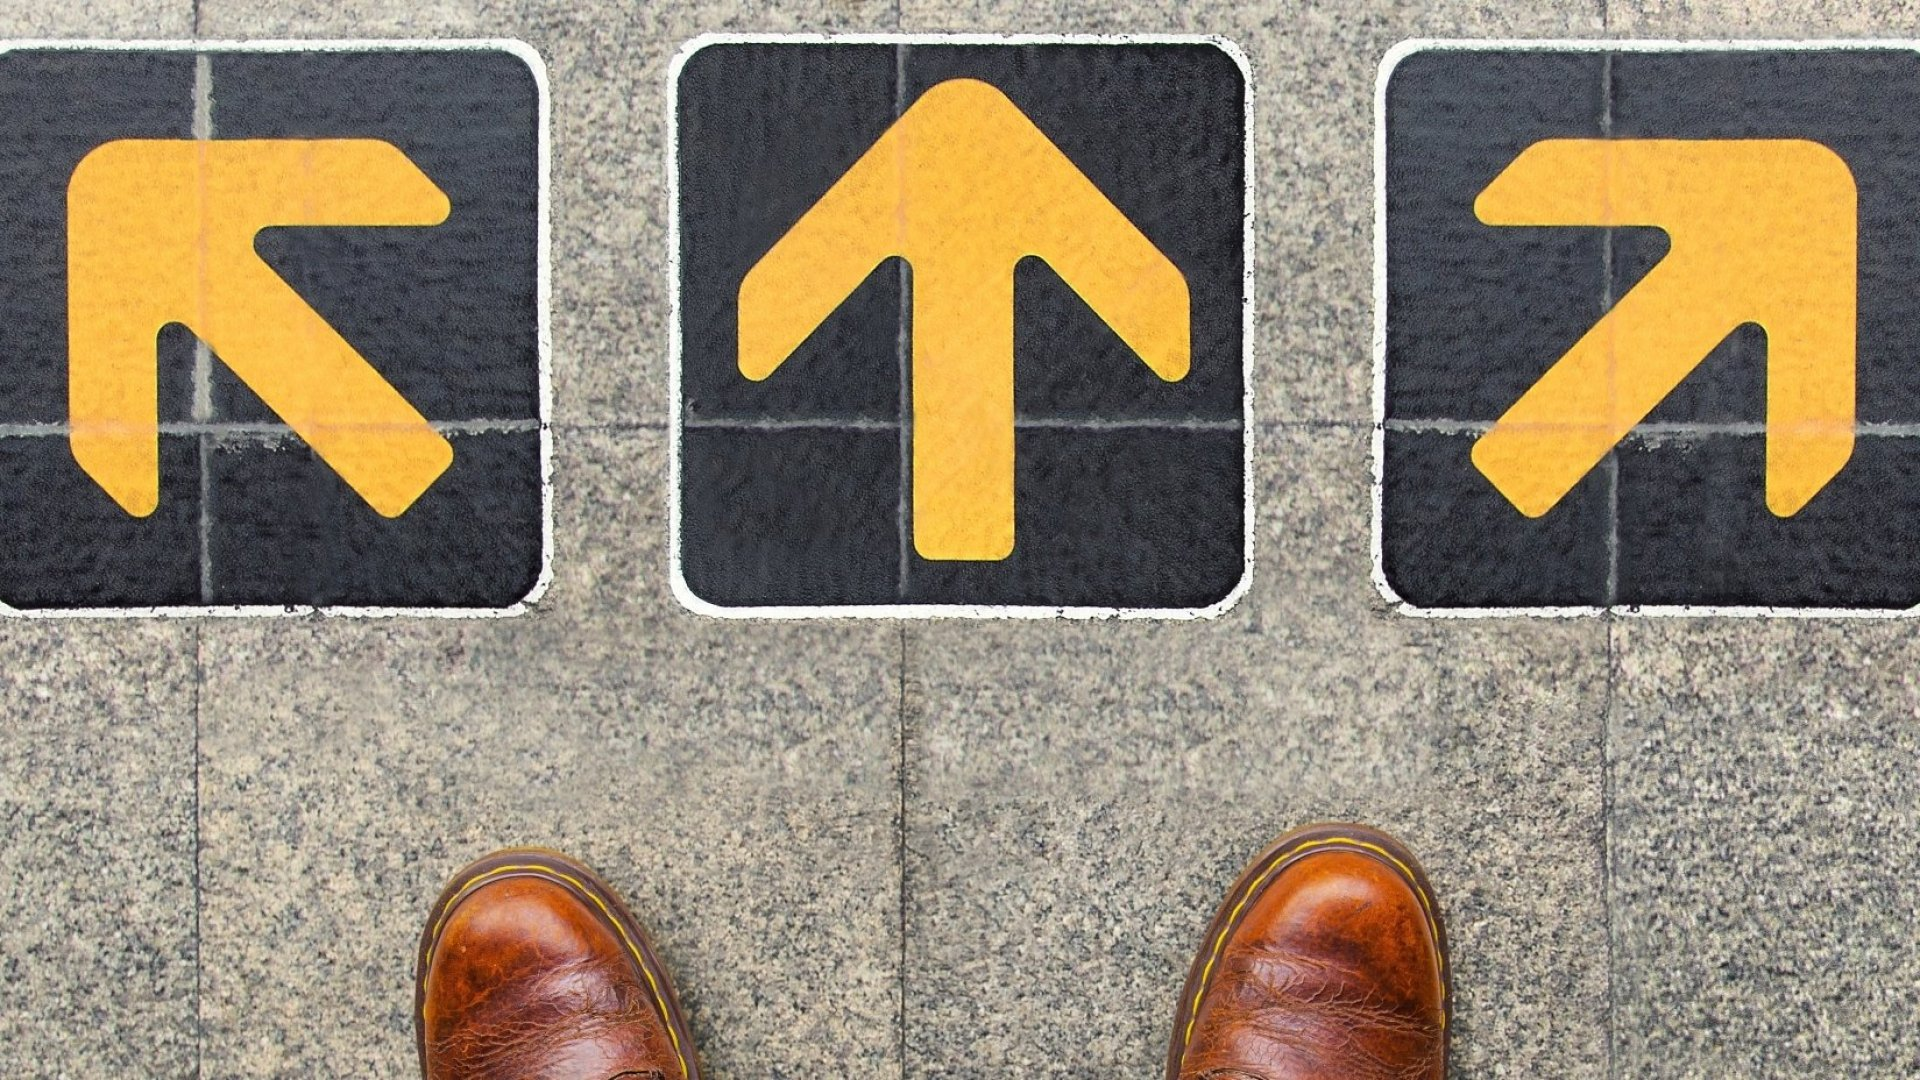 How to Be Happier At Work with 1 Simple Choice